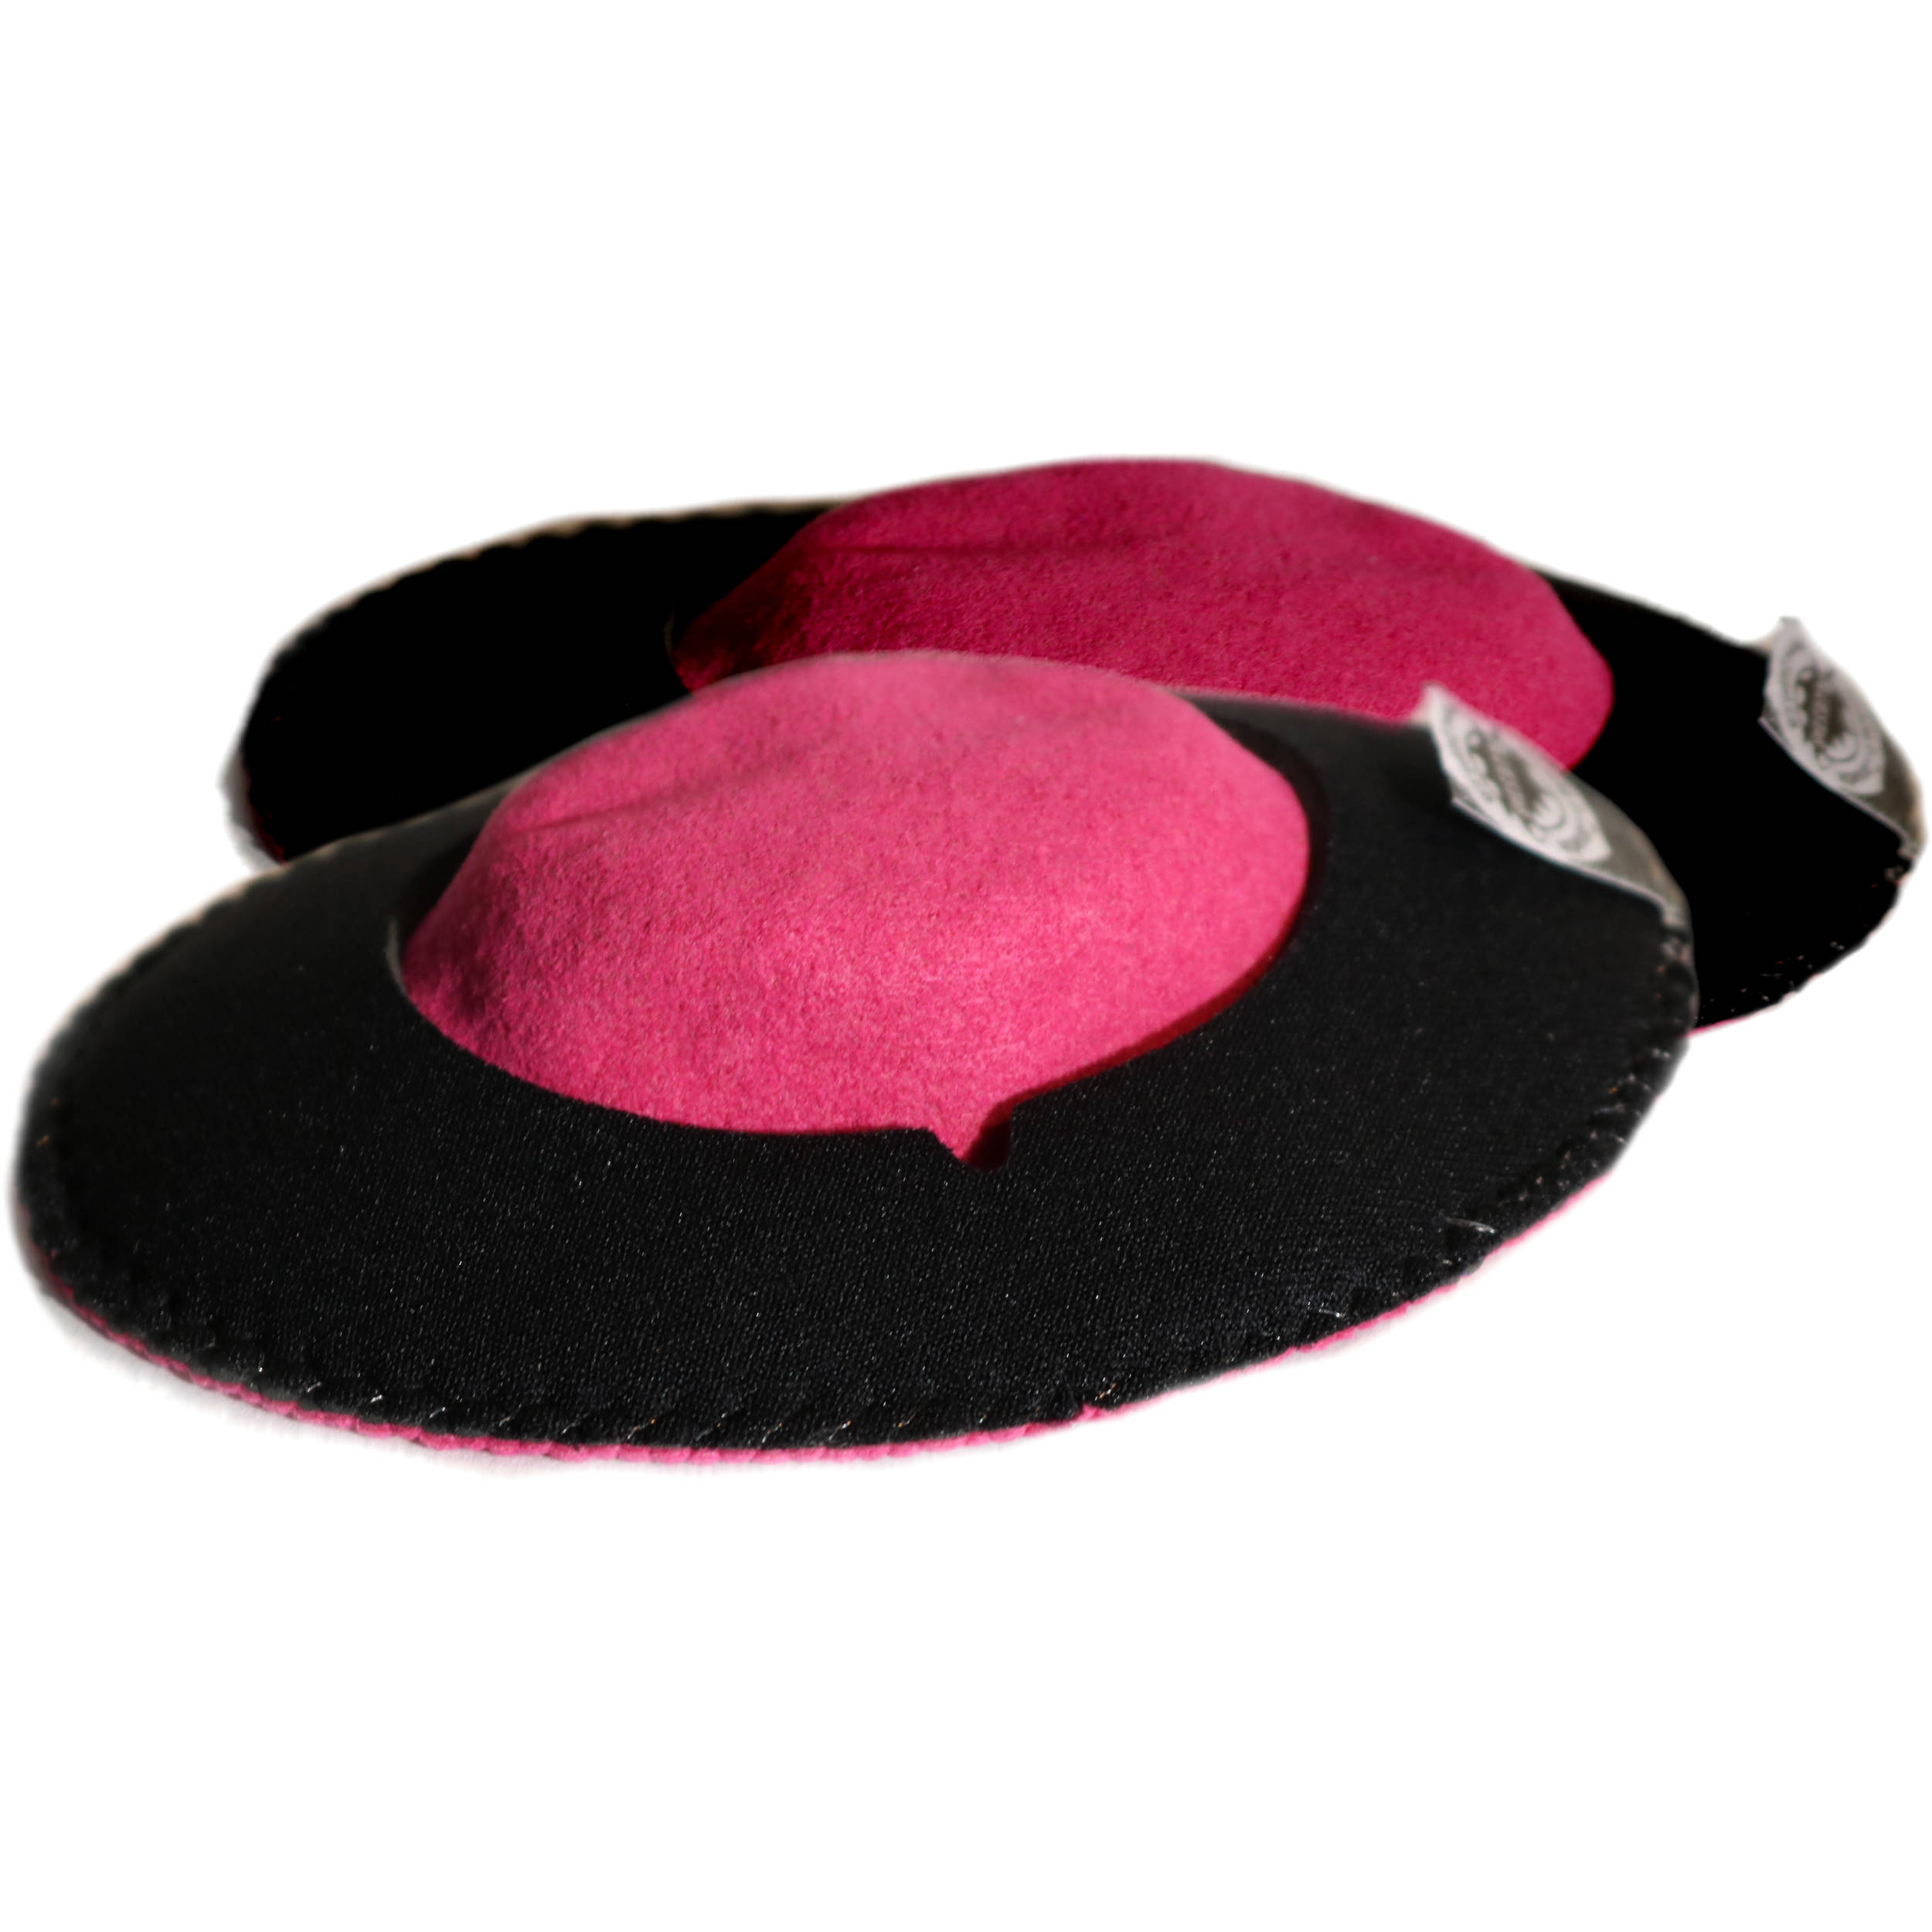 CanSkins Earcup Covers for Sony MDR-7510 Headphones (Pair, Pink)